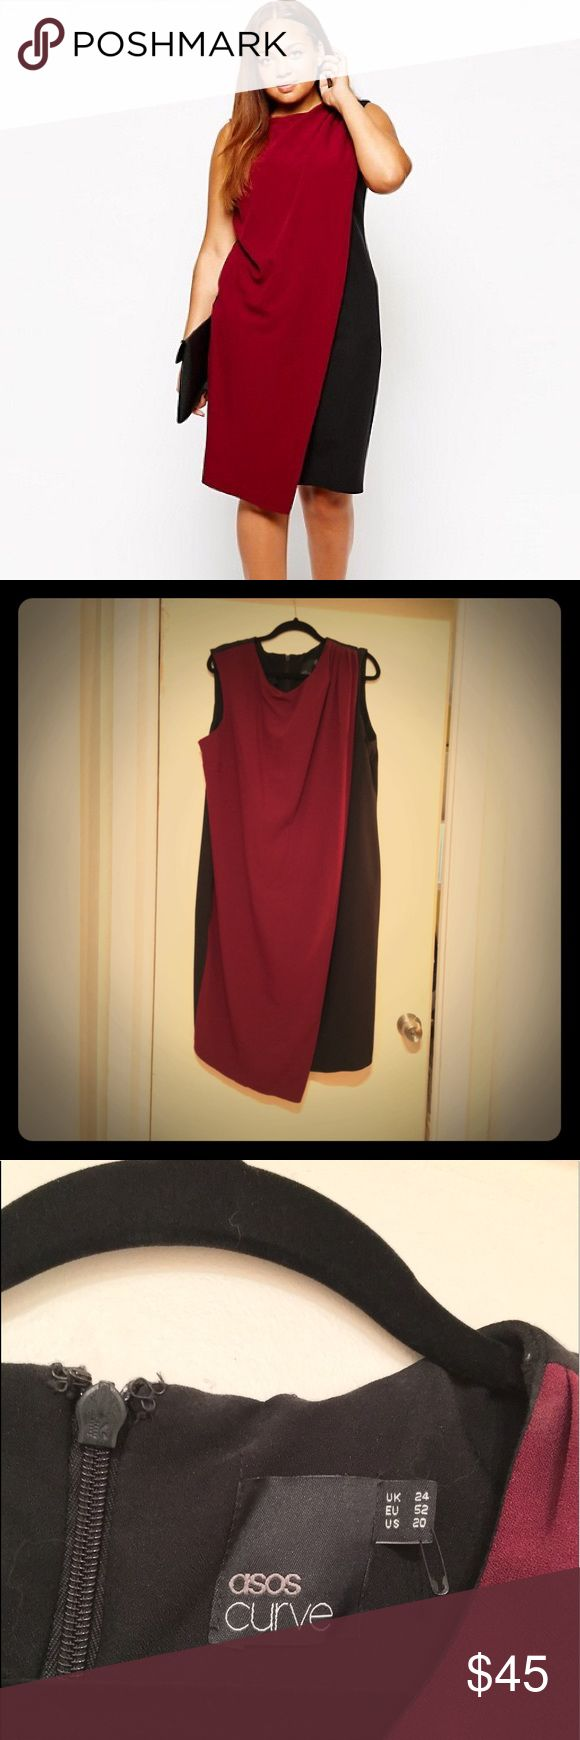 ASOS Curve Dress with Drape Layer Black/Wine High quality drape layer dress. Super dramatic and waiting for the perfect brooch. ASOS Curve Dresses